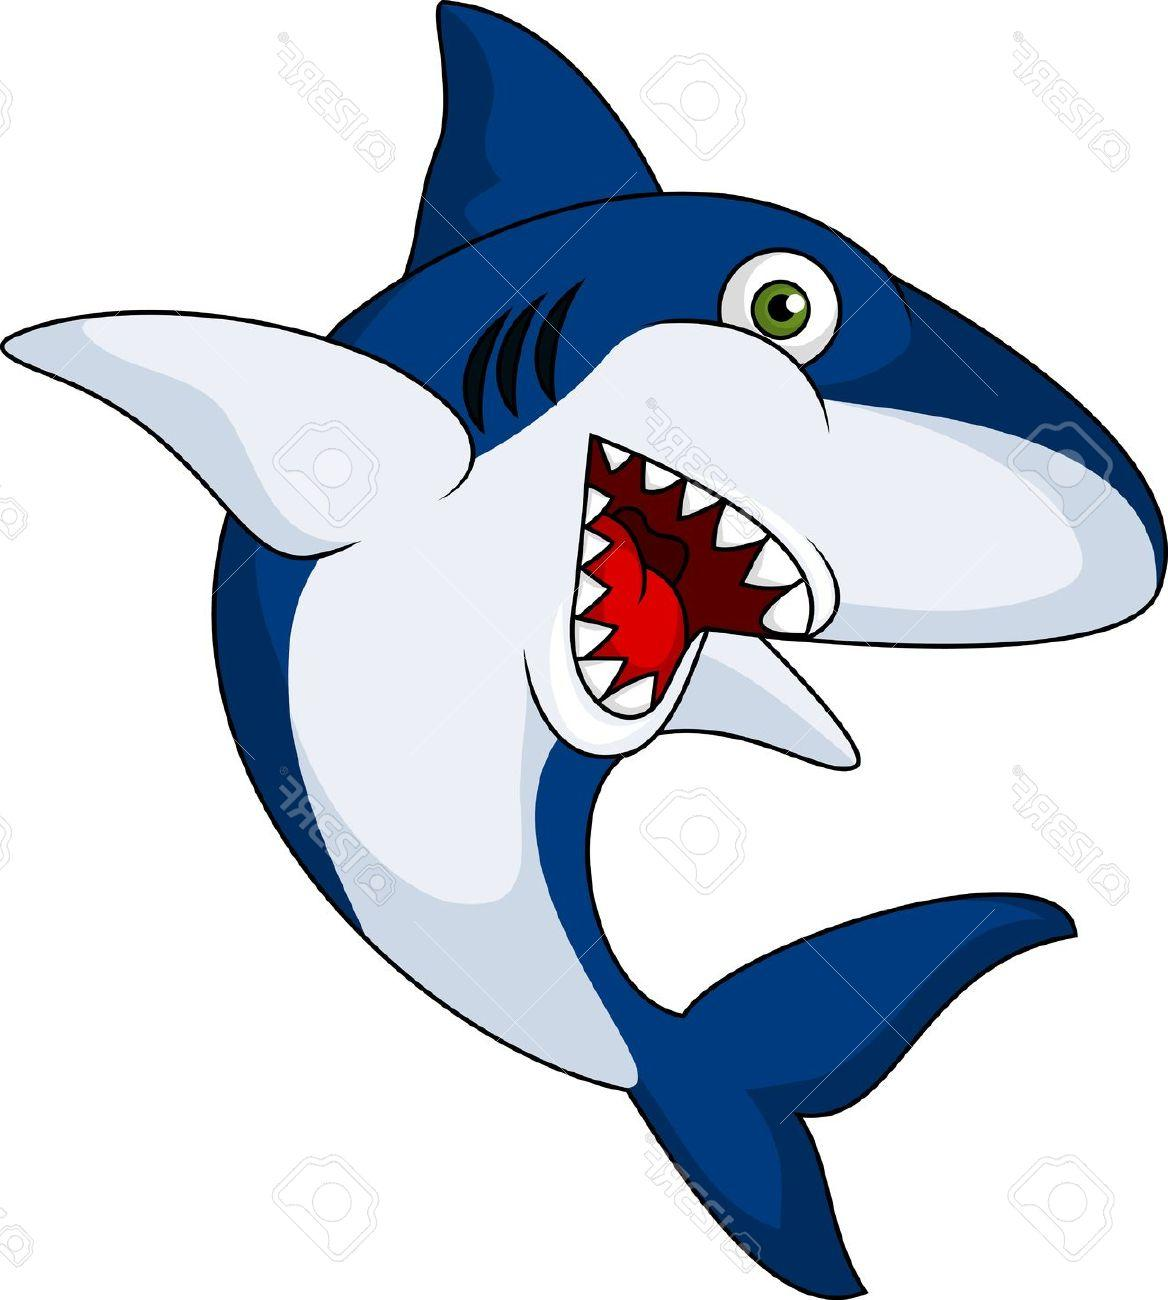 1168x1300 Hd Smiling Shark Cartoon Stock Vector Image